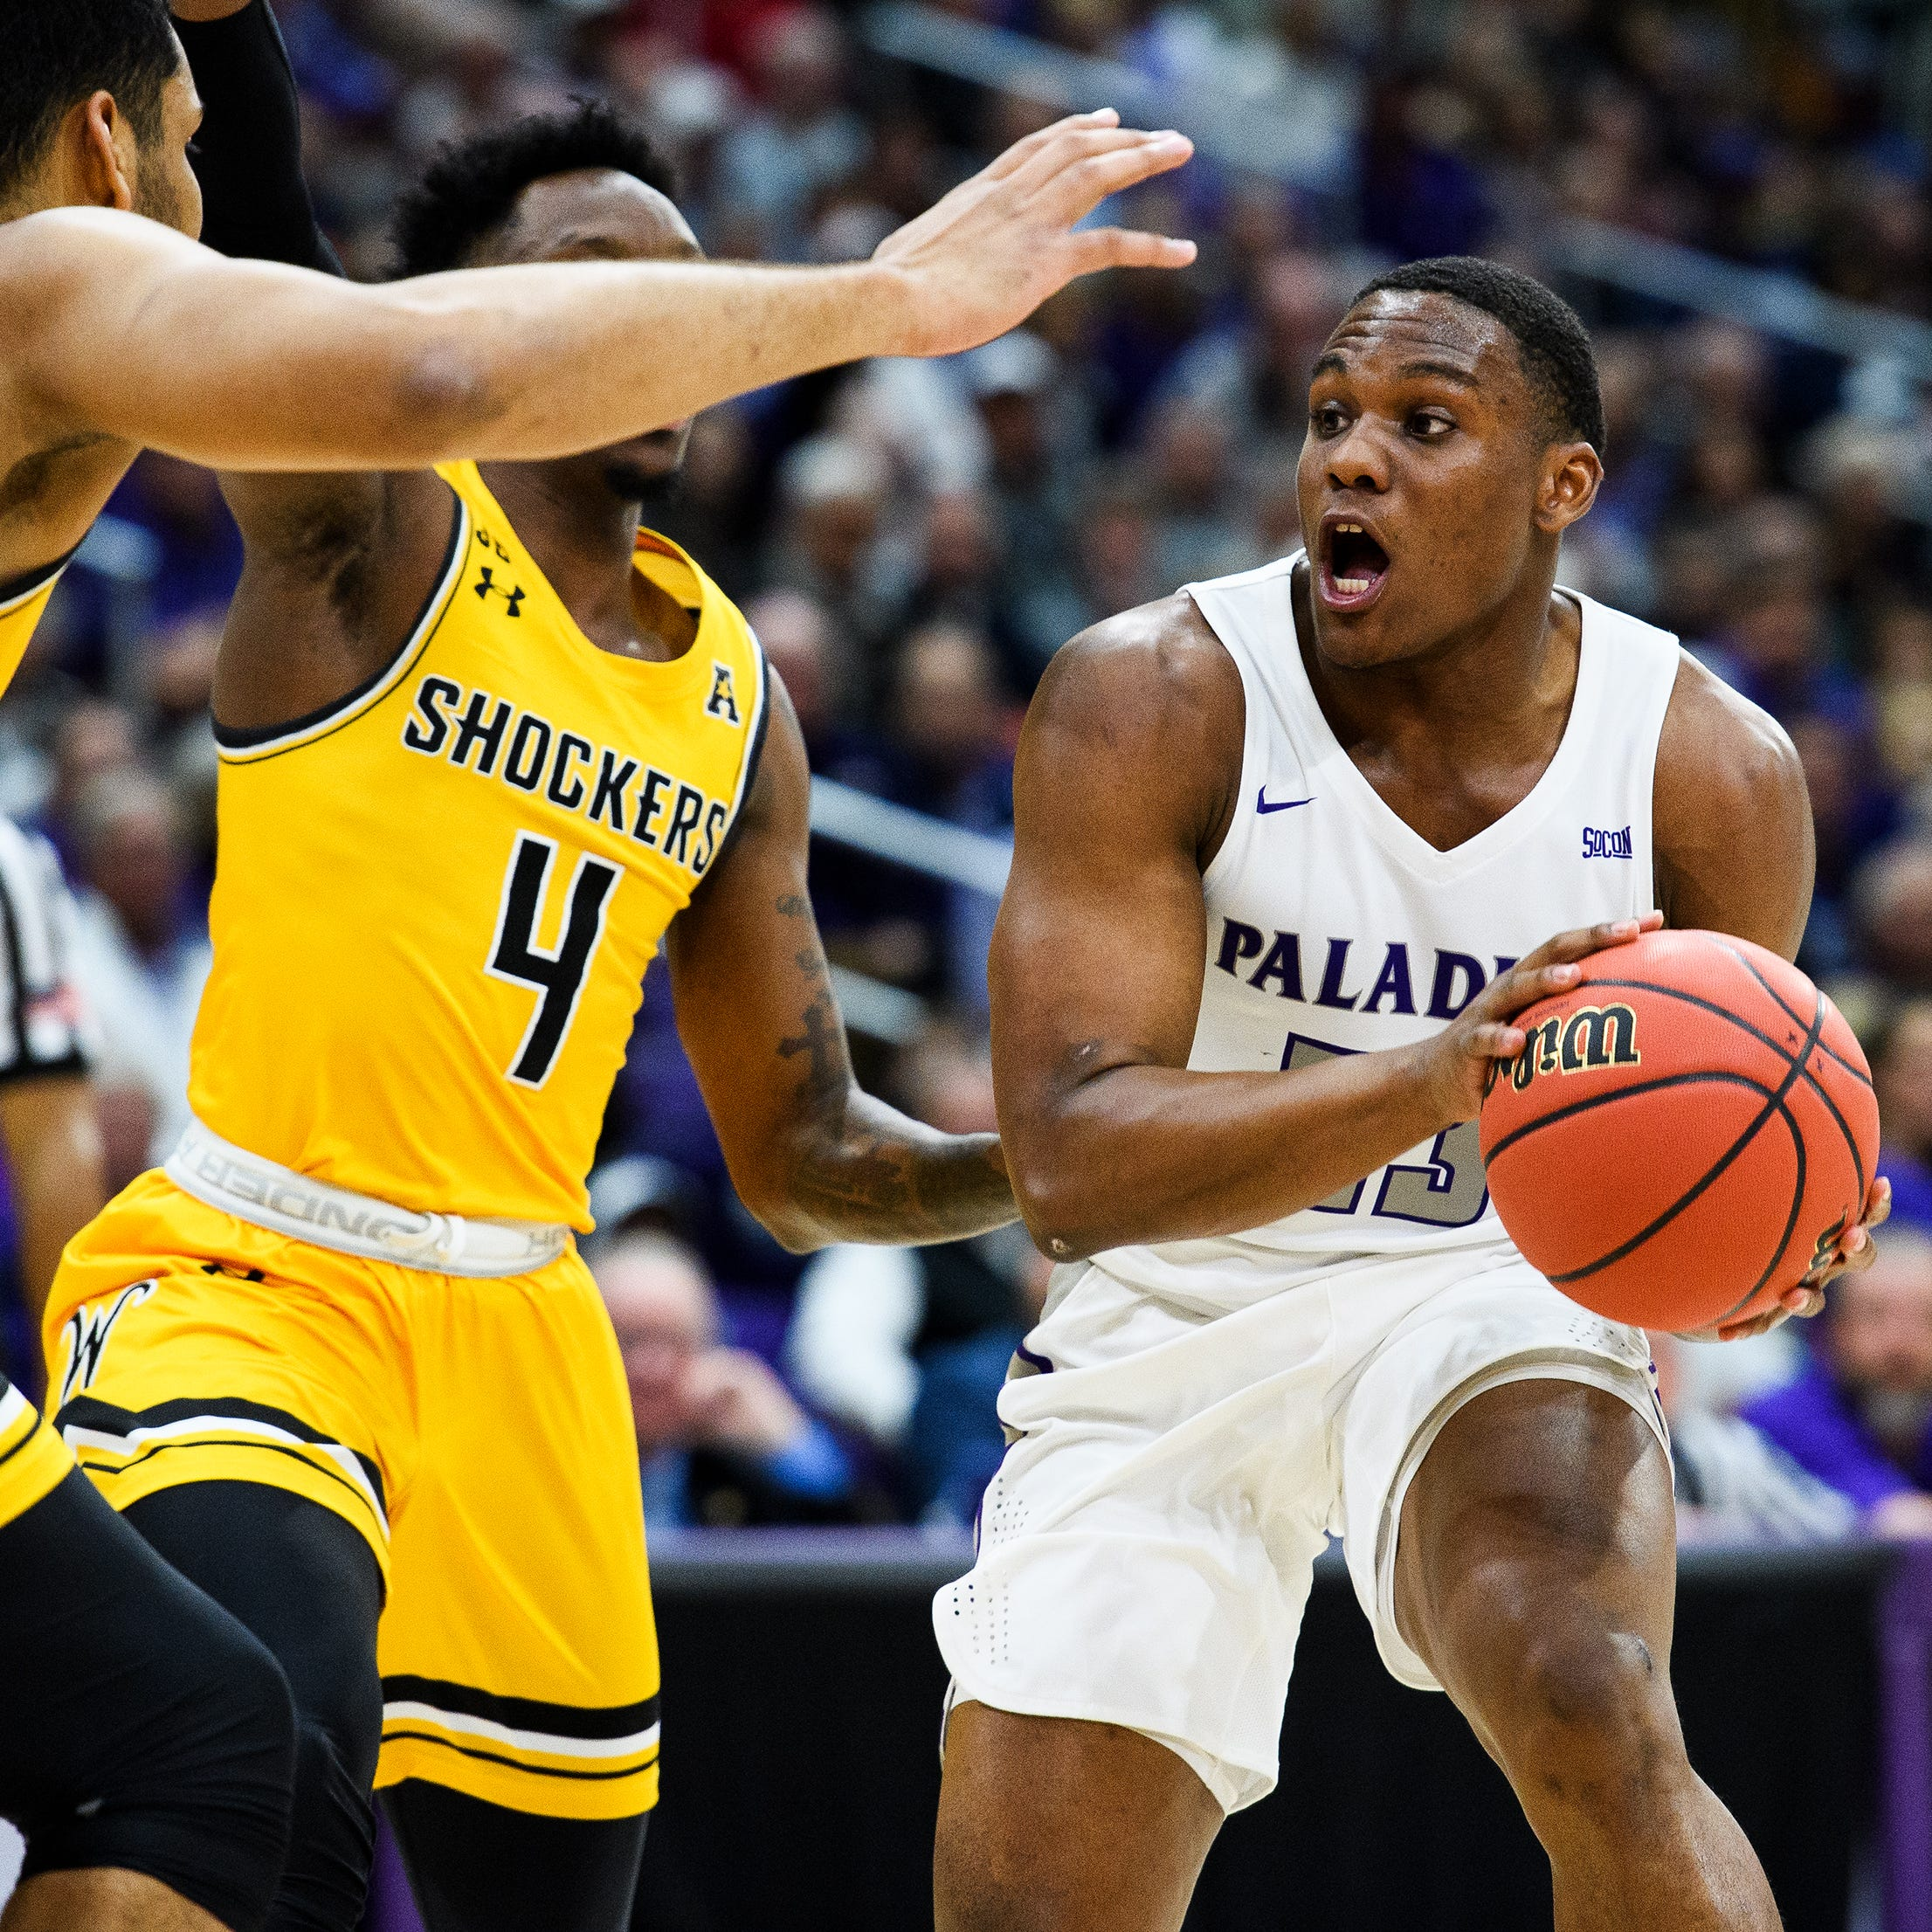 Furman basketball's dream season ends in thrilling NIT bout with Wichita State